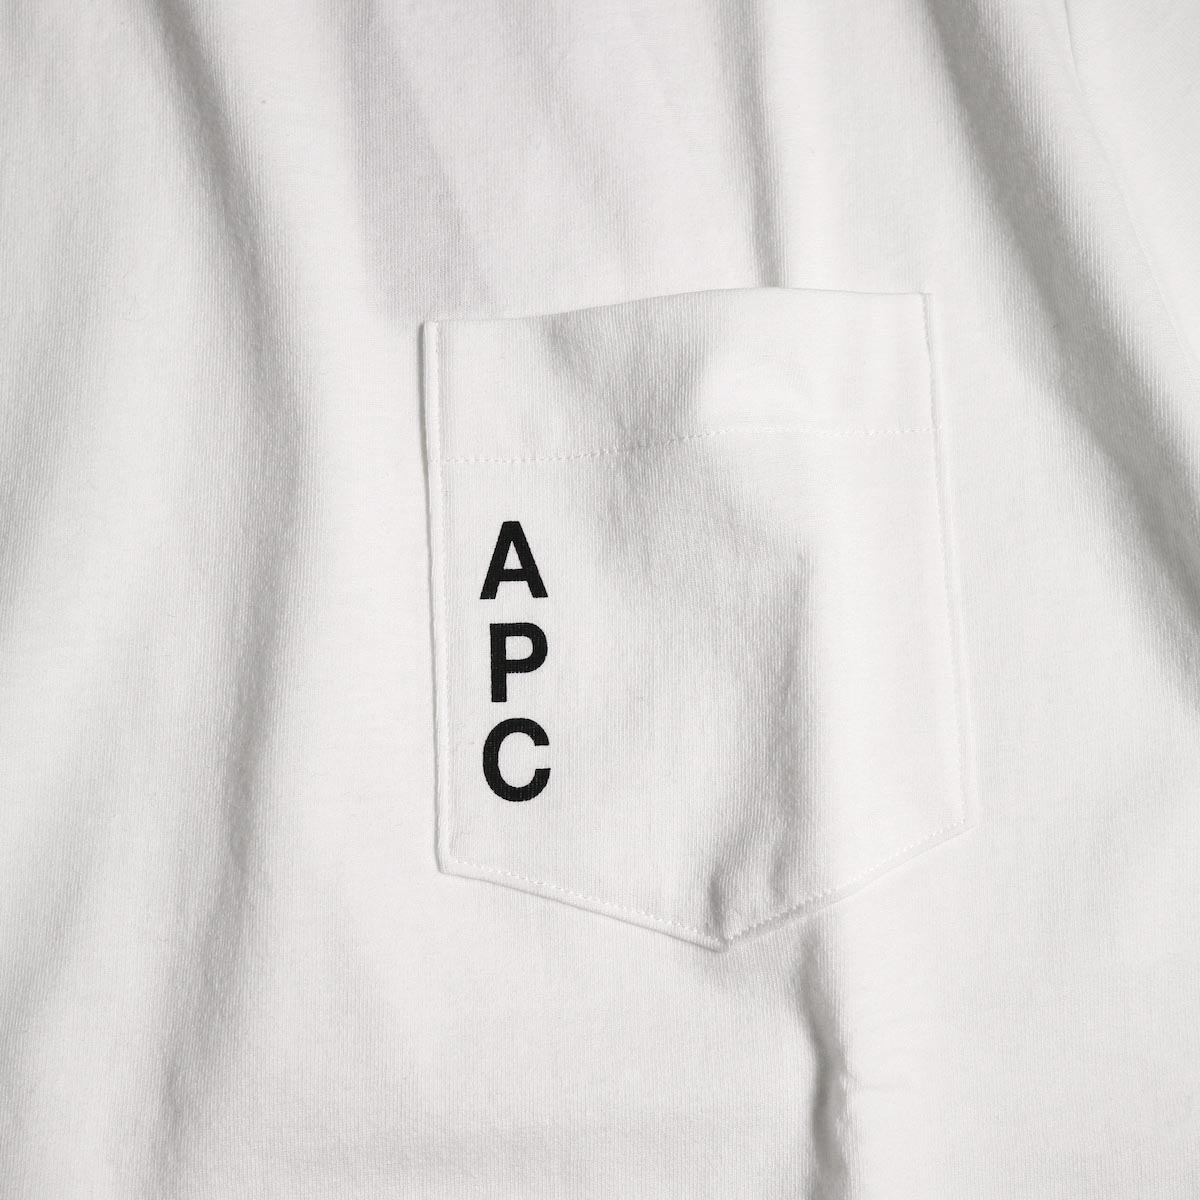 A.P.C. / Crew Neck Pocket Tee (White) ロゴ